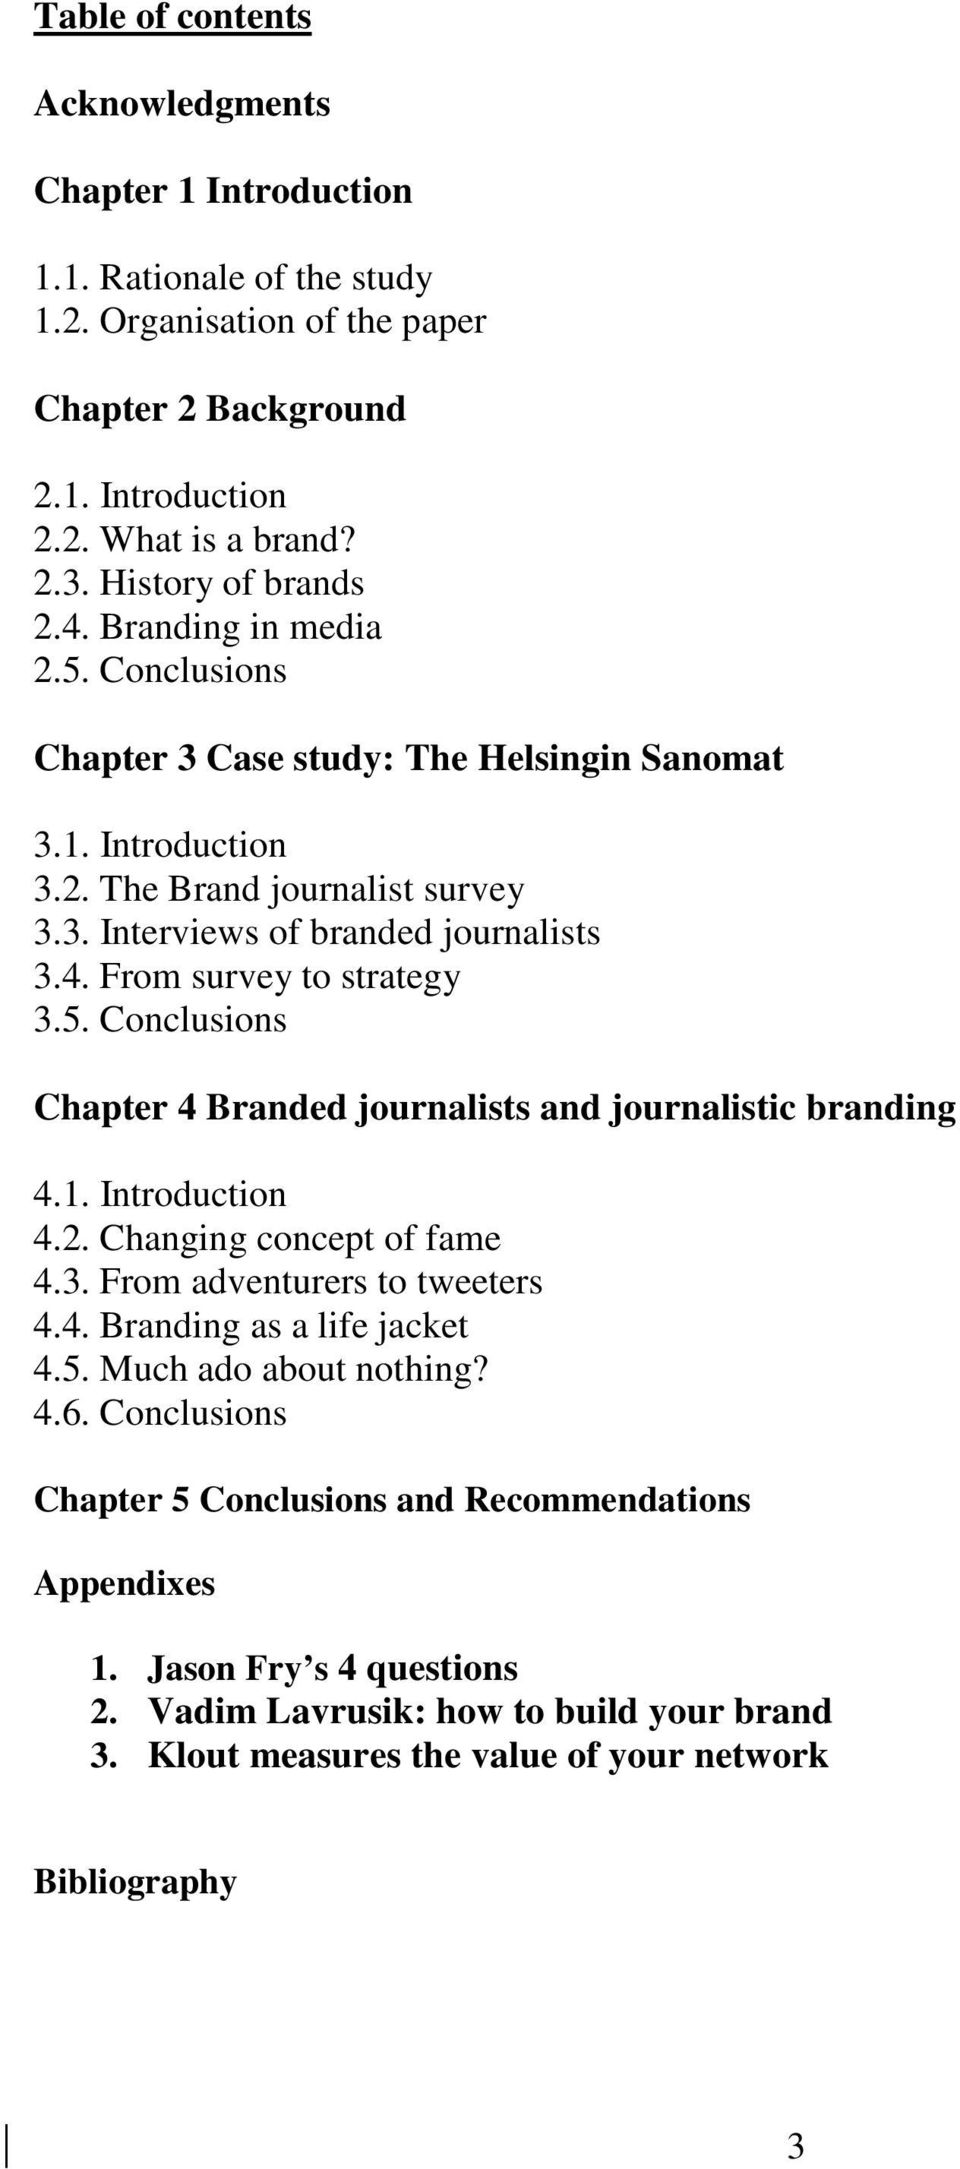 5. Conclusions Chapter 4 Branded journalists and journalistic branding 4.1. Introduction 4.2. Changing concept of fame 4.3. From adventurers to tweeters 4.4. Branding as a life jacket 4.5. Much ado about nothing?